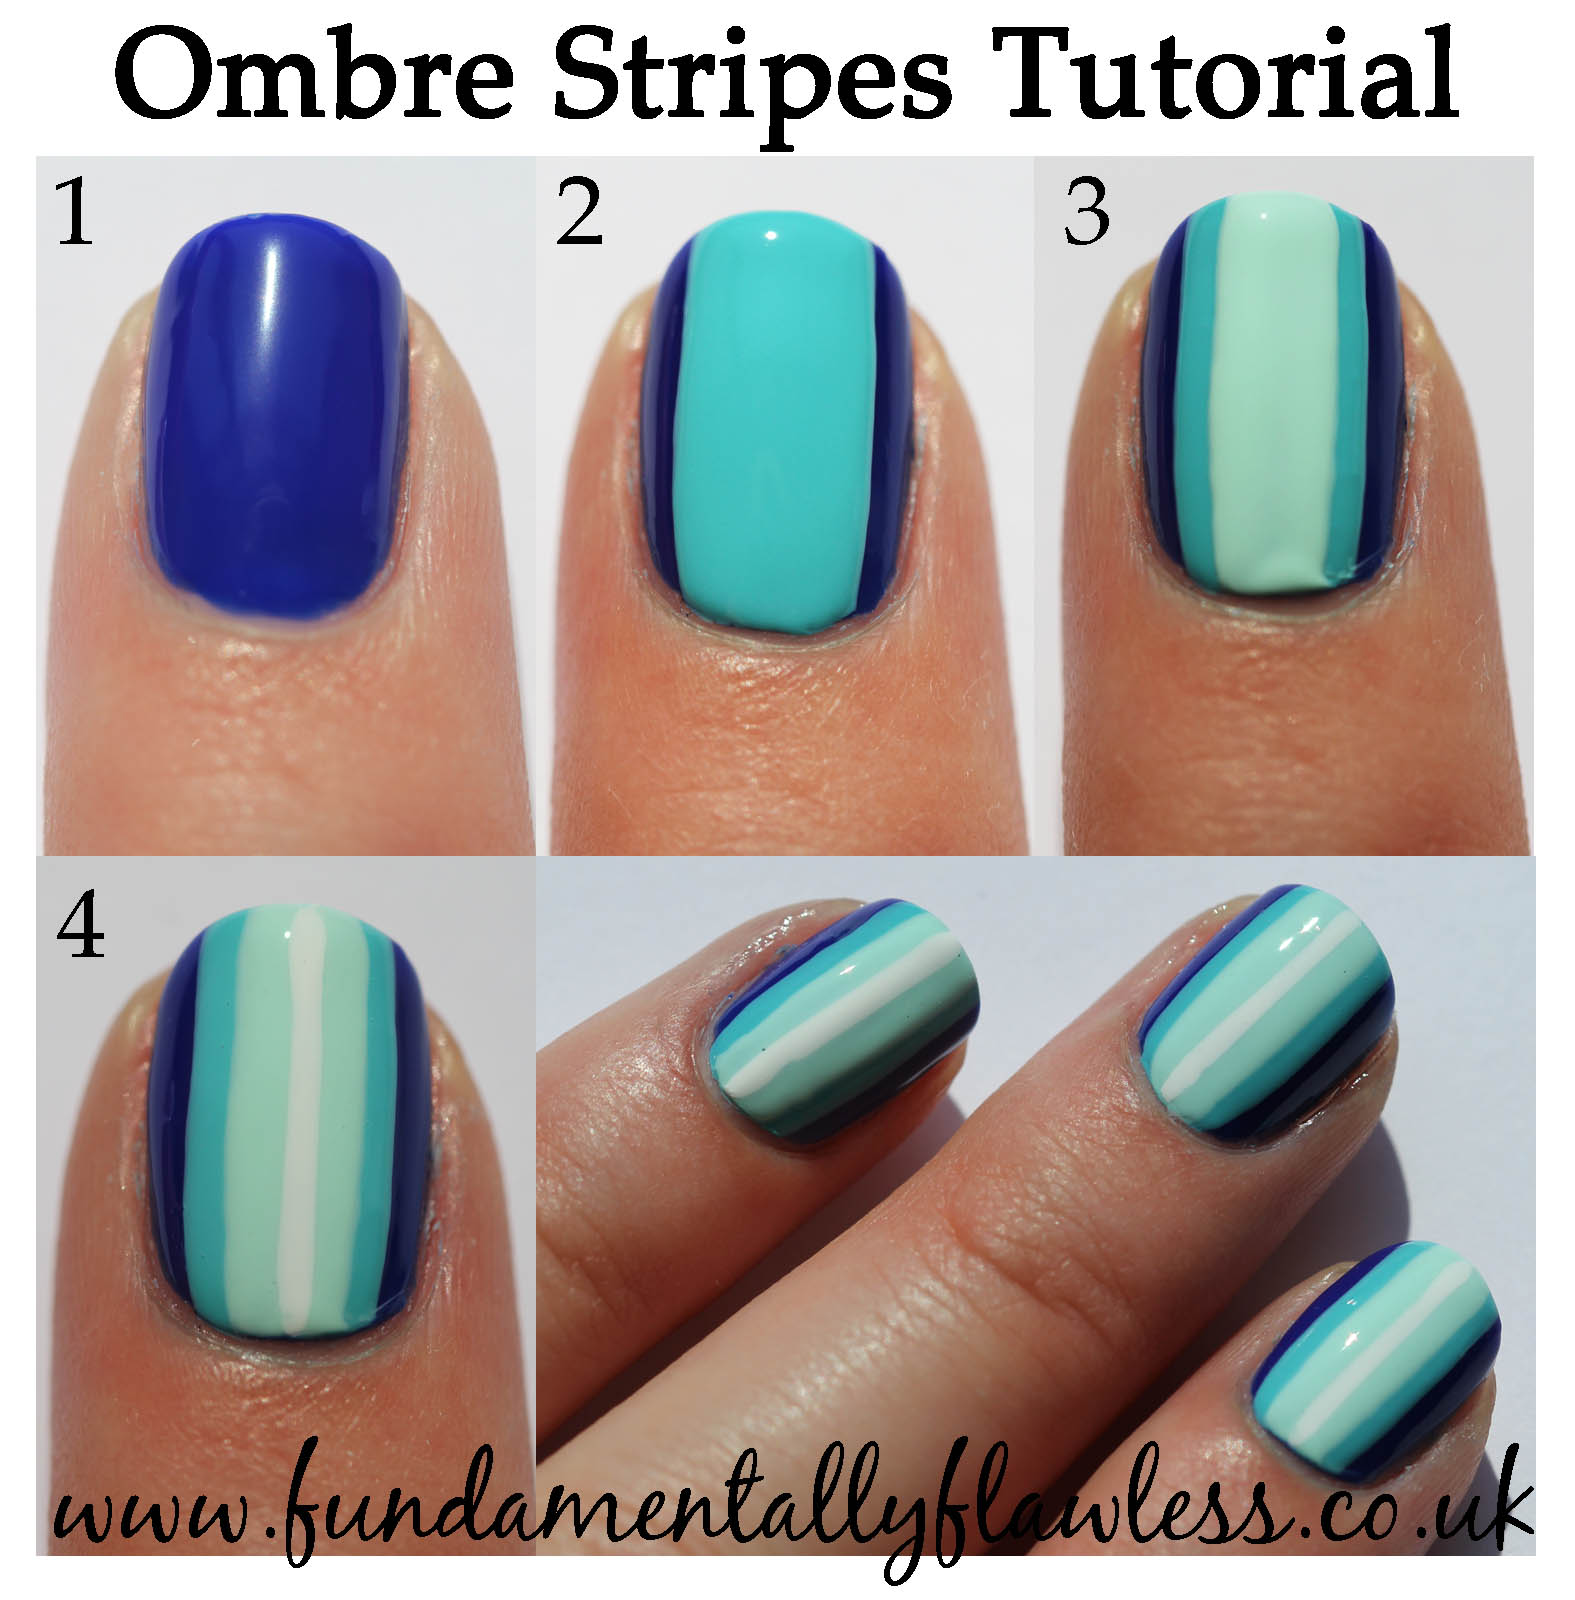 Fundamentally Flawless: Blue Ombre Stripes Nail Art Tutorial